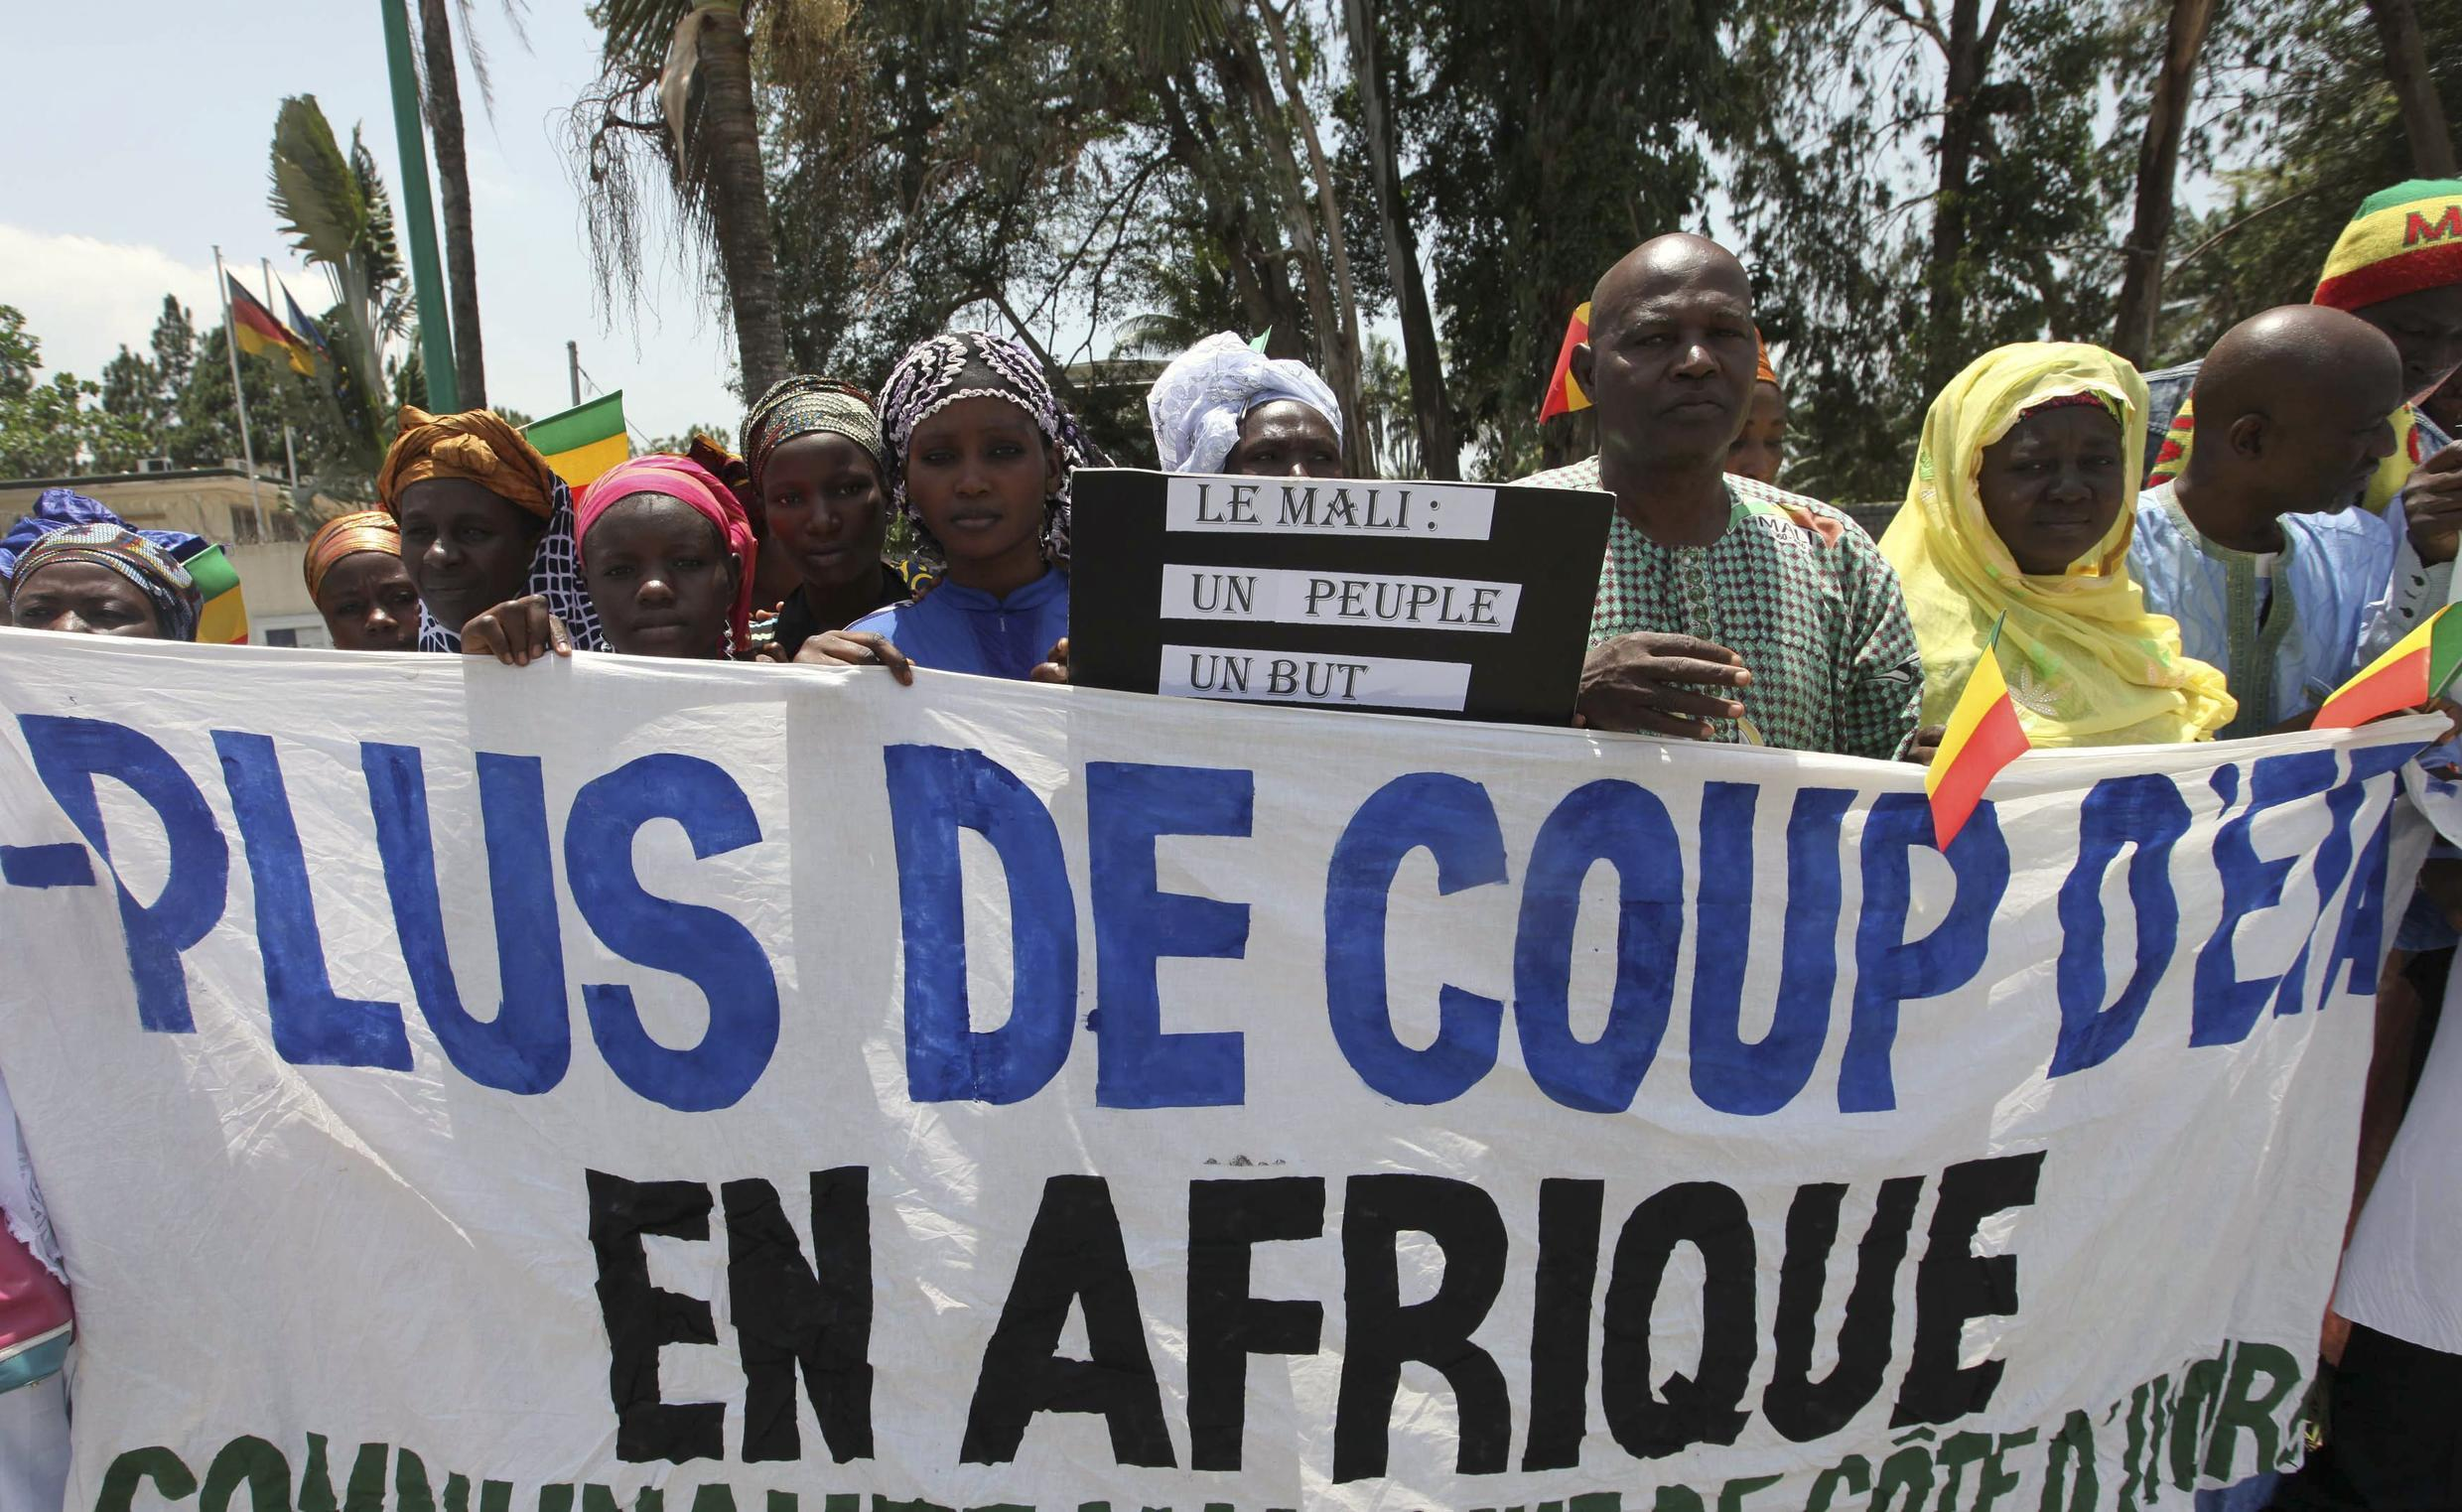 A demonstration in Abidjan against coup leaders during an ECOWAS summit on Mali and Guinea Bissau